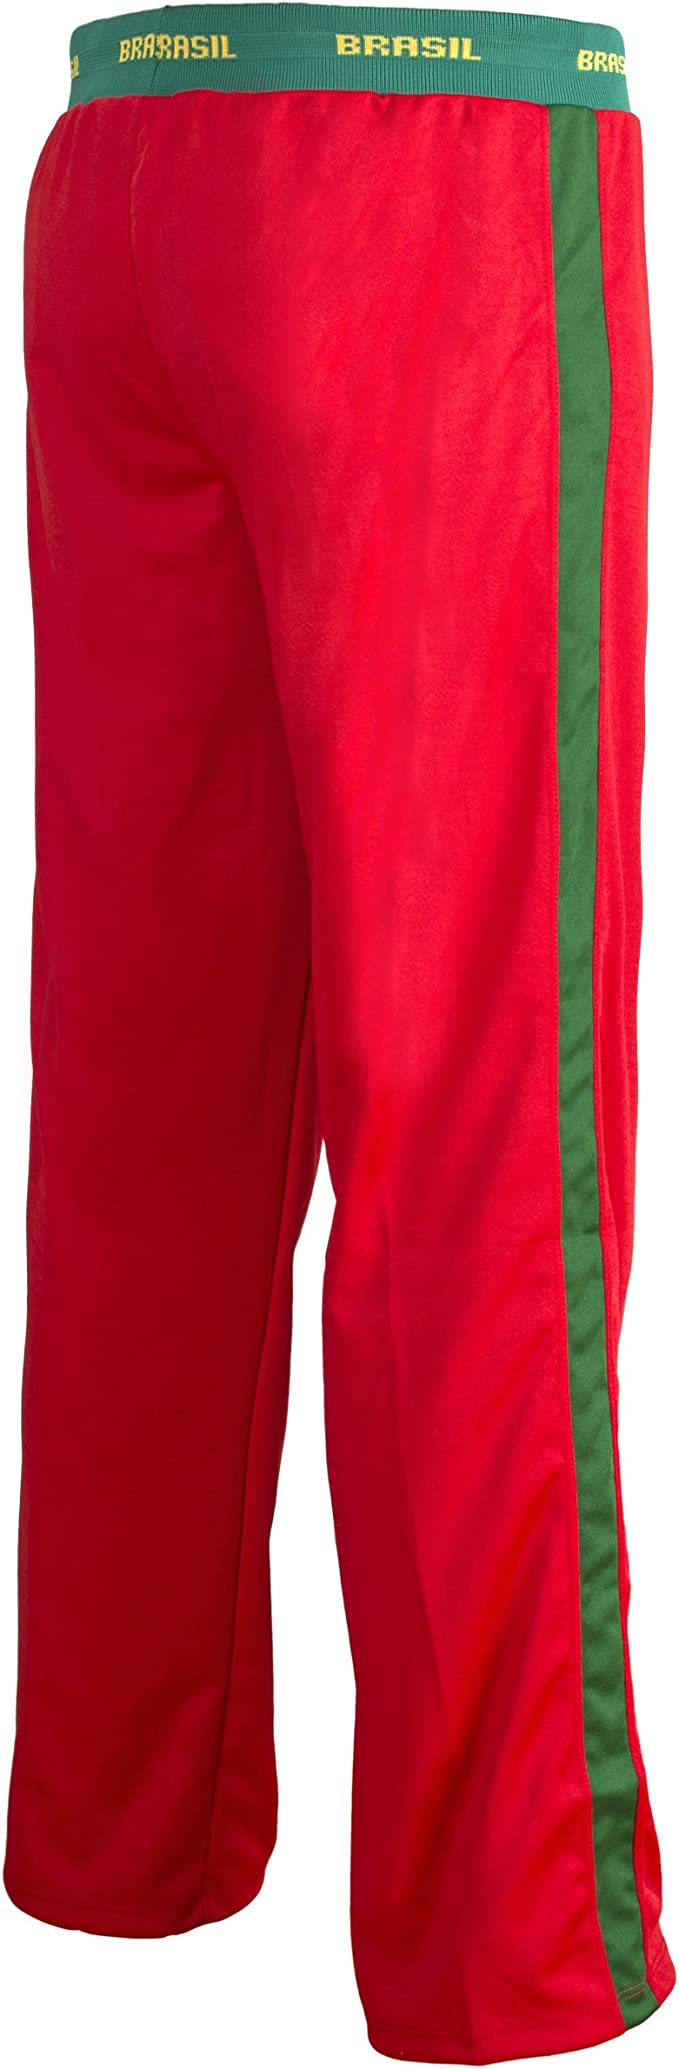 Amazon Com Jl Sport Unisex Brazil Flag Green Red Capoeira Kids Youth Martial Arts Elastic Sports Trousers Pants Clothing Brazilians are heavily involved in sports. amazon com